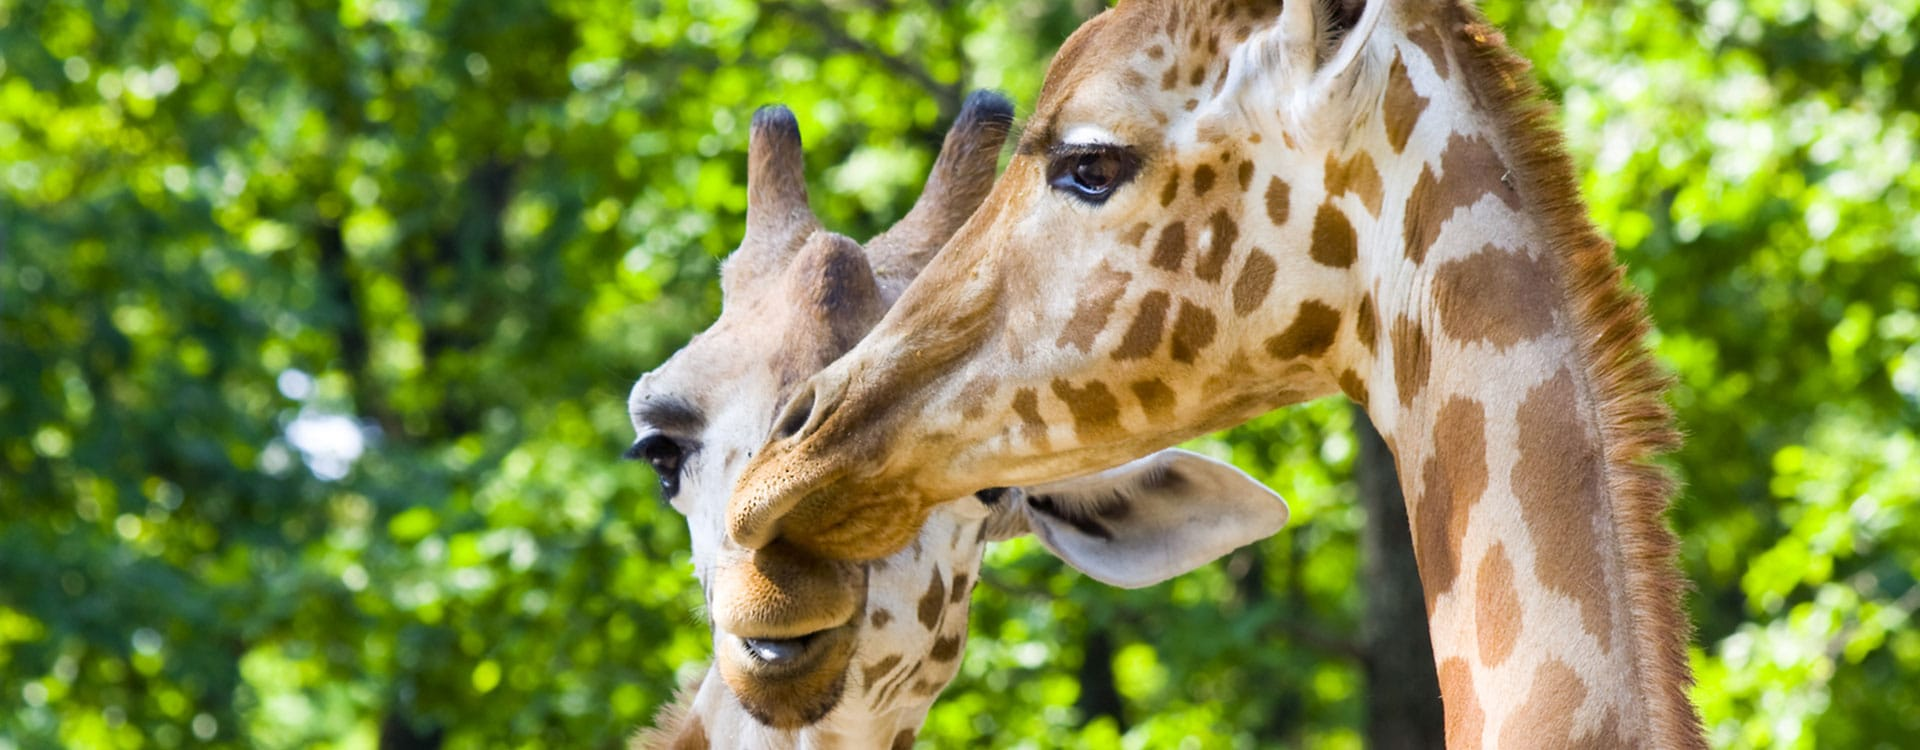 donate-to-save-giraffes-now